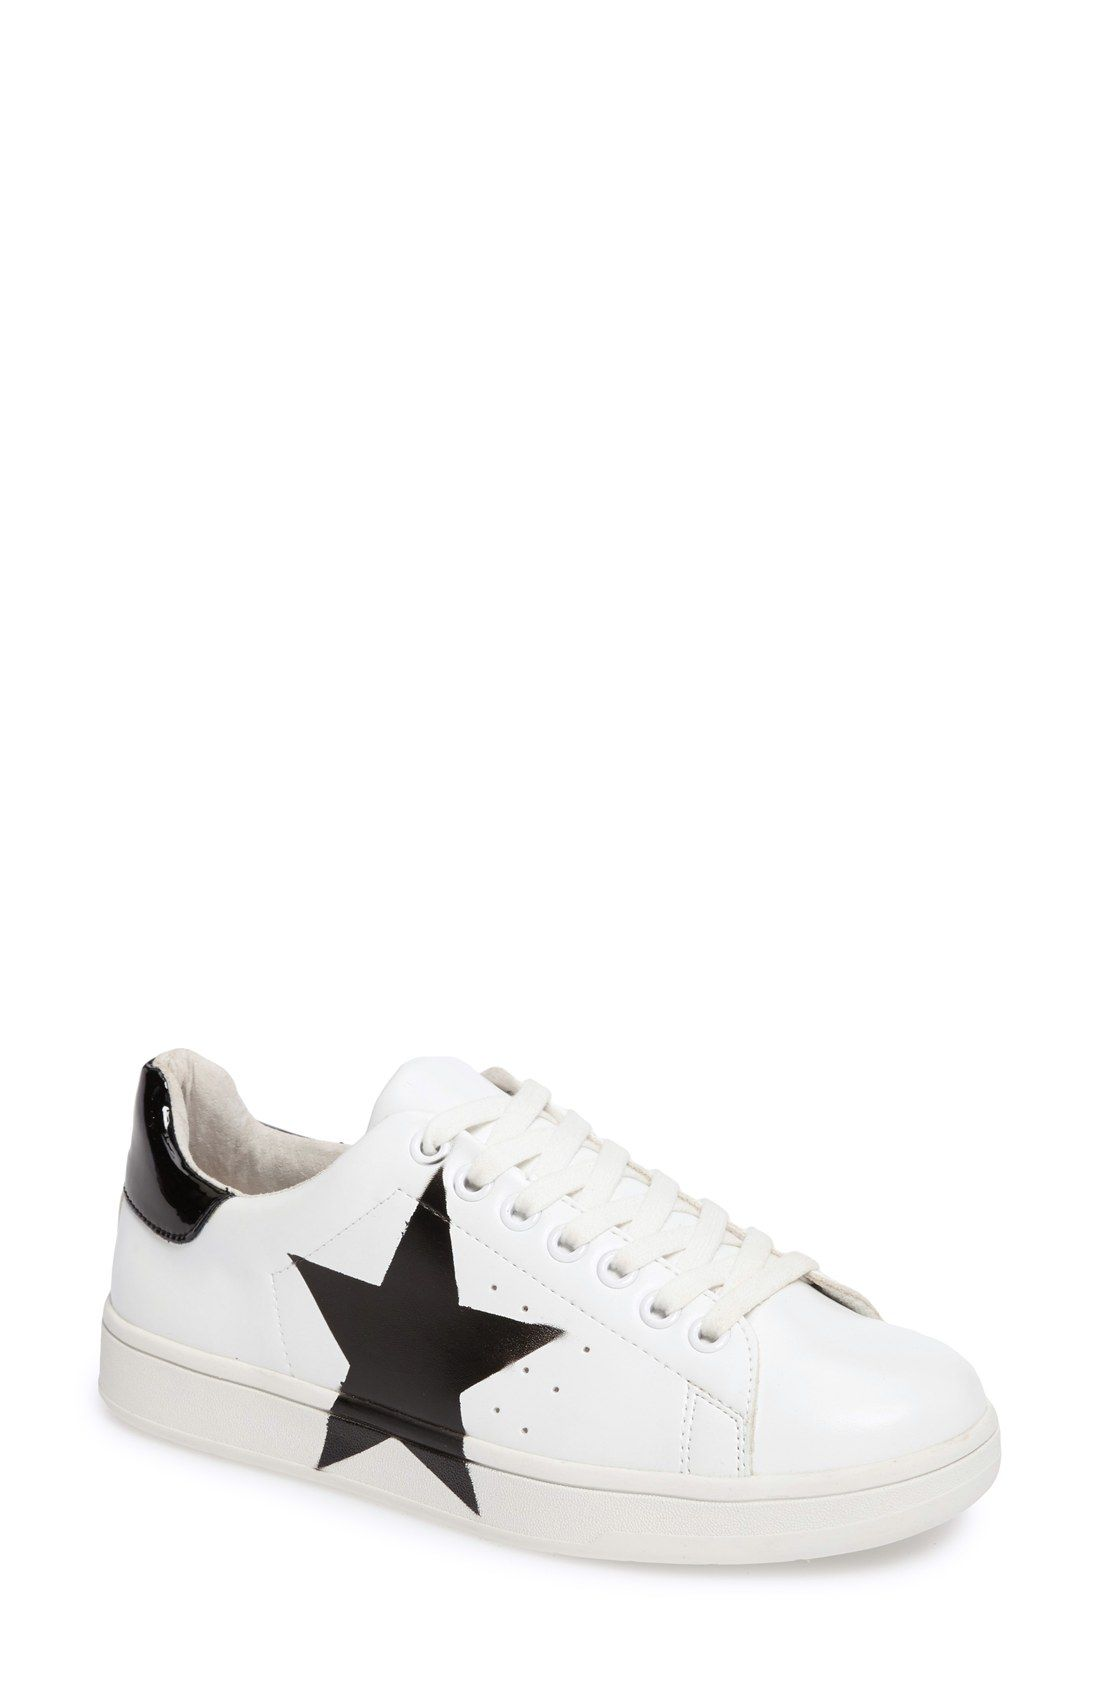 Steve Madden Steve Madden Rayner Sneaker (Women) available at